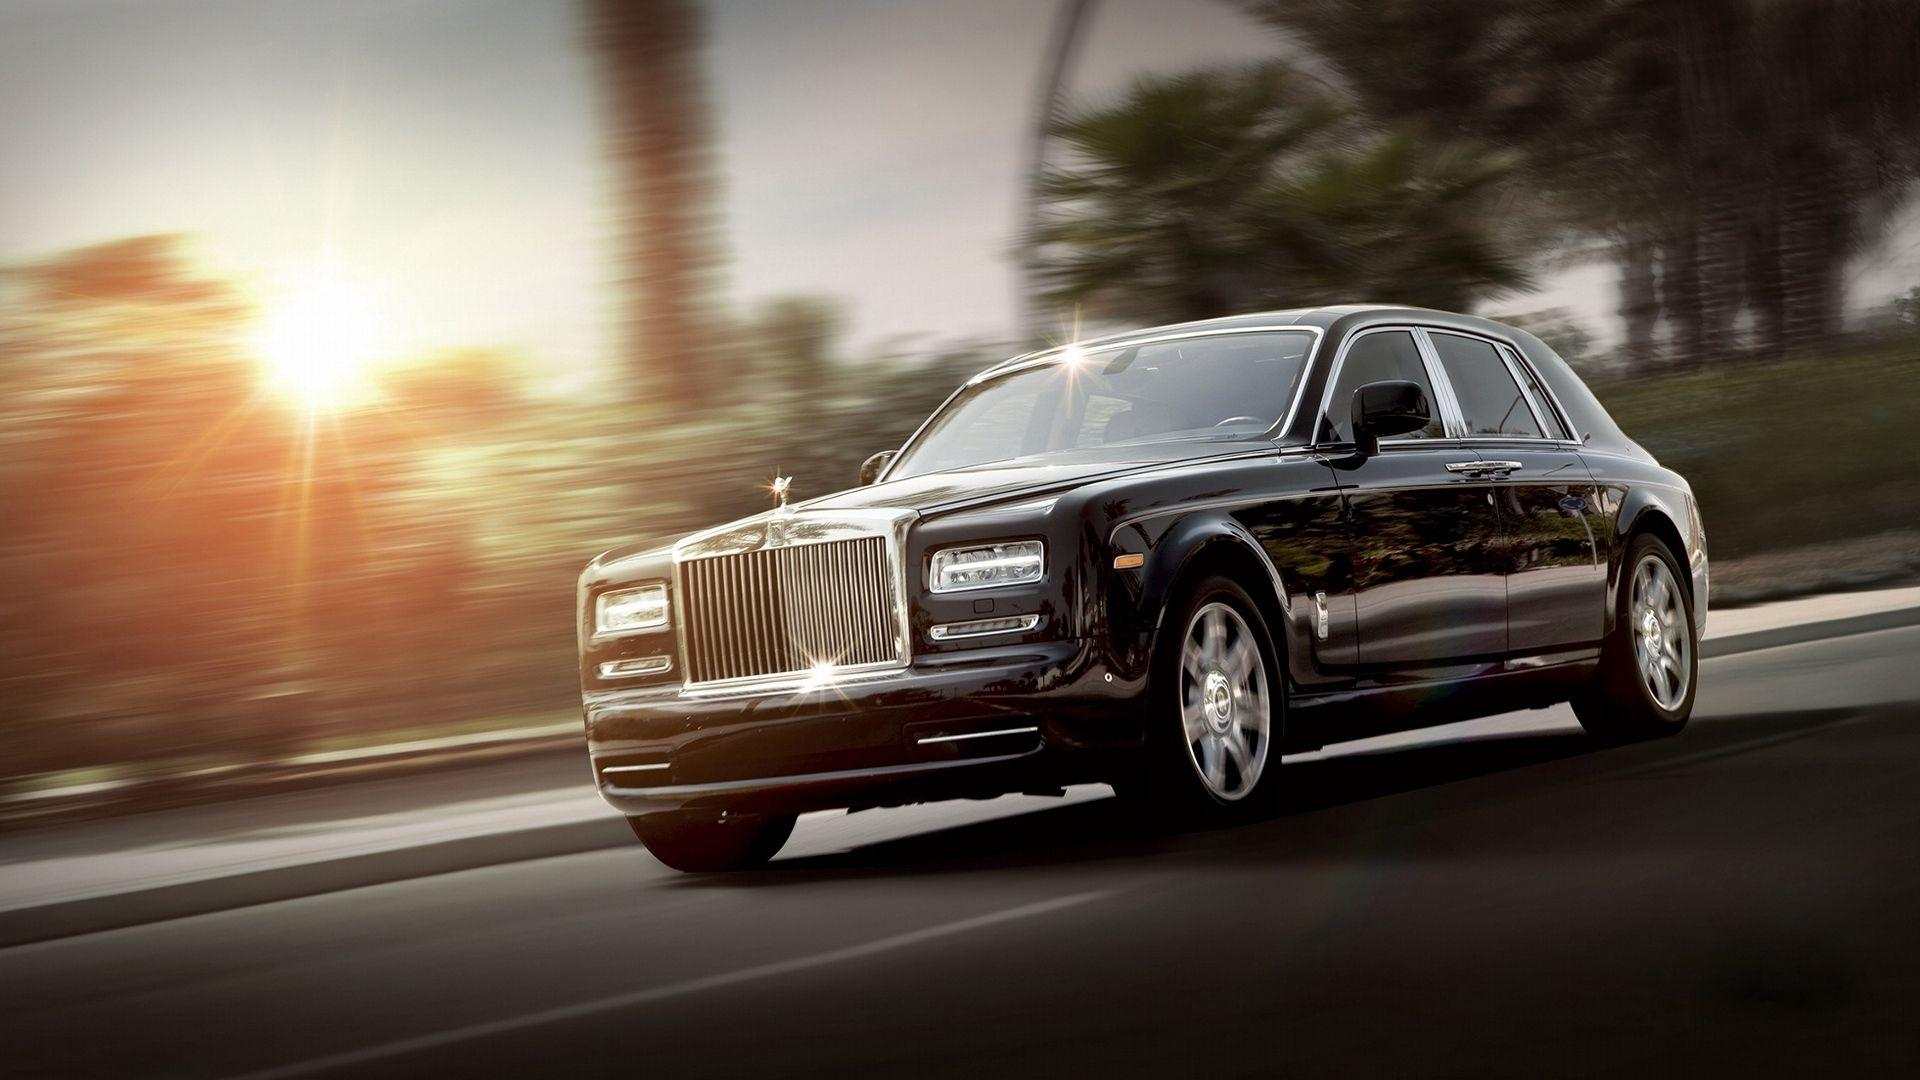 Download wallpaper 1920x1080 rolls royce, phantom, luxury, side view ...